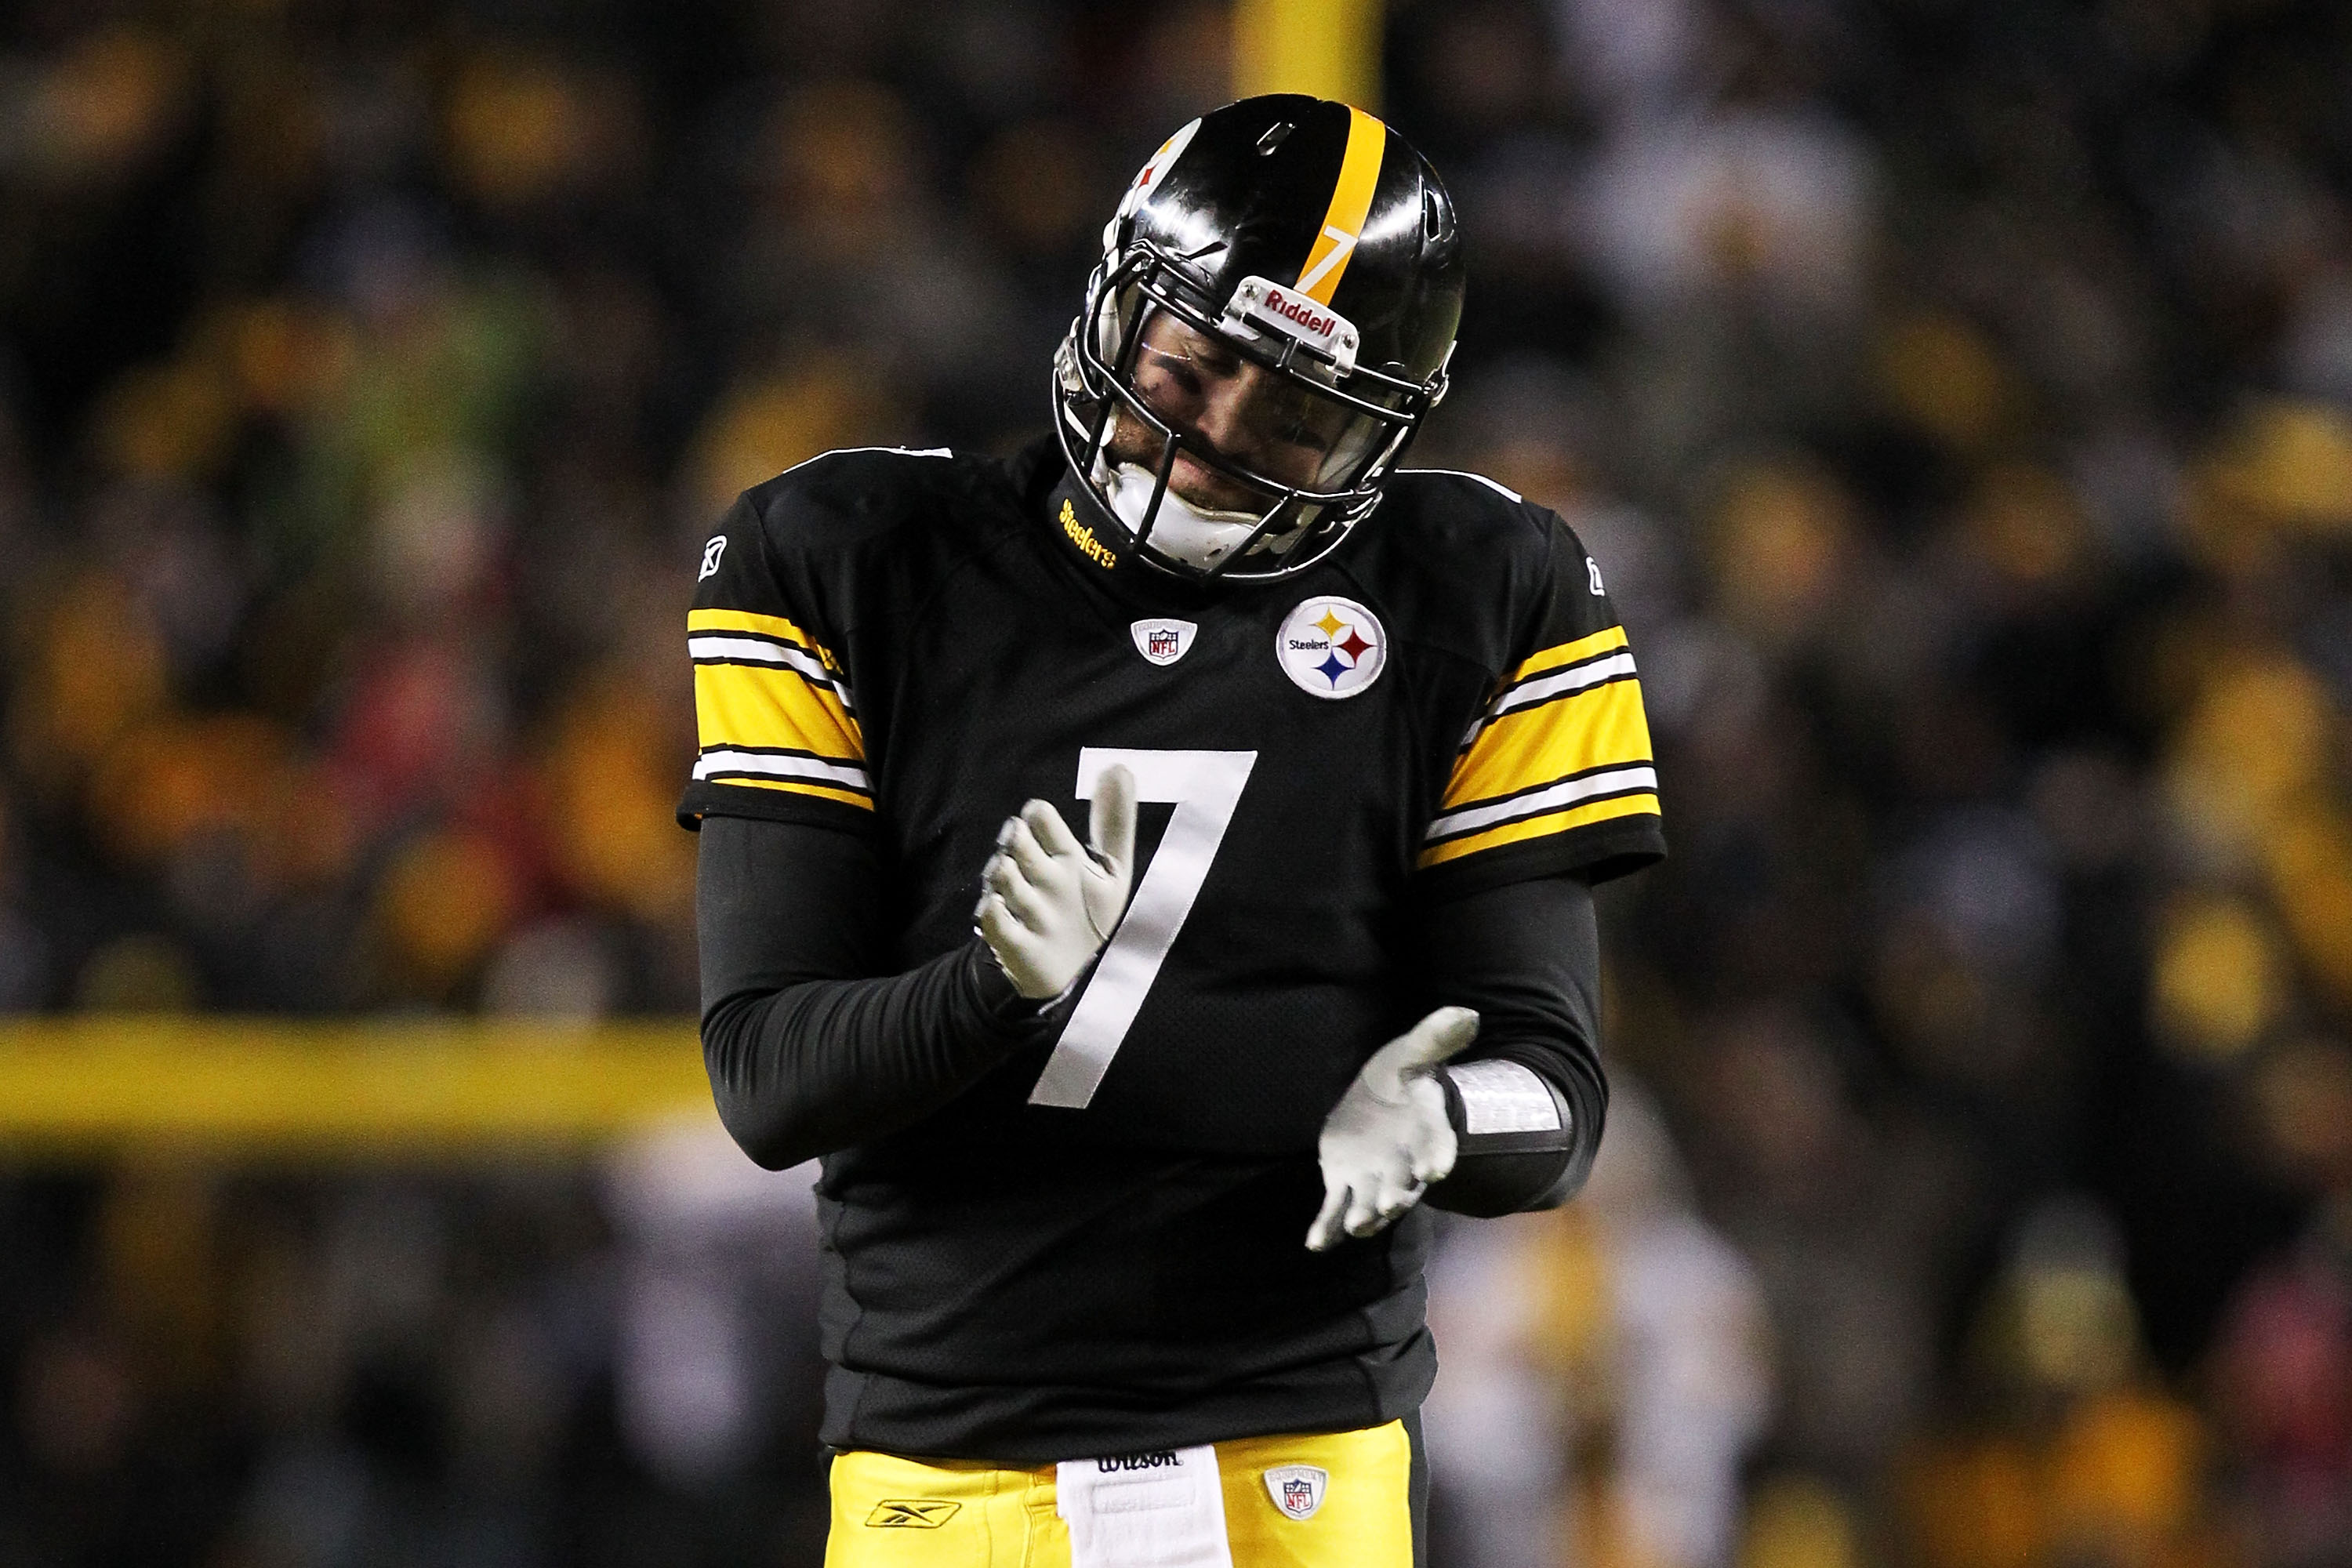 PITTSBURGH, PA - JANUARY 23:  Ben Roethlisberger #7 of the Pittsburgh Steelers reacts during their game against the New York Jets during the 2011 AFC Championship game at Heinz Field on January 23, 2011 in Pittsburgh, Pennsylvania.  (Photo by Ronald Marti